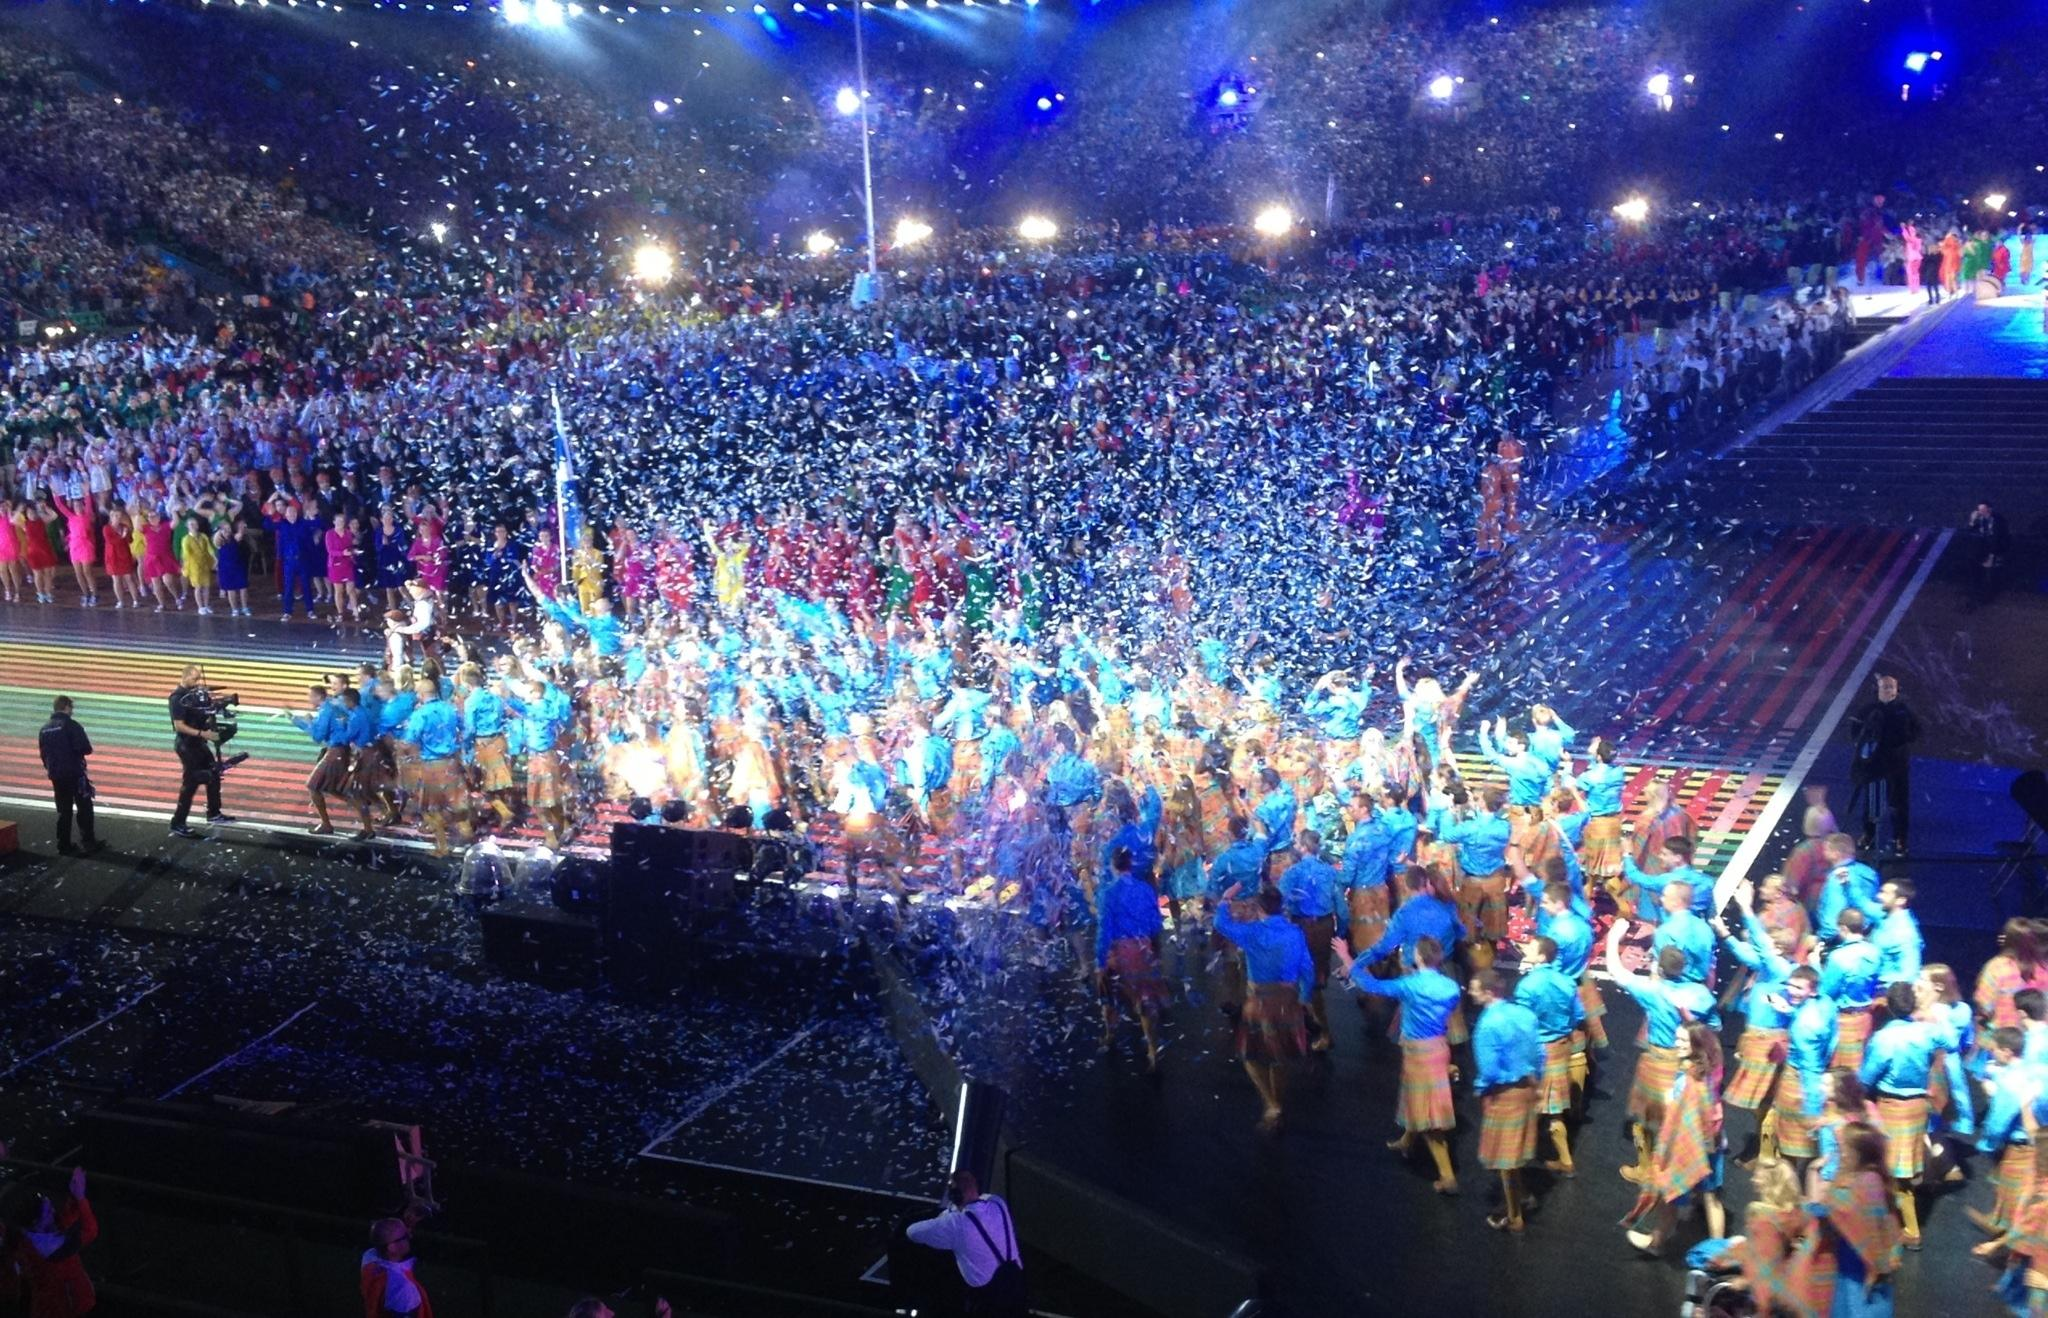 What a roar from the crowd as Scotland  come into the stadium #Glasgow2014 http://t.co/5btg6cKYF8